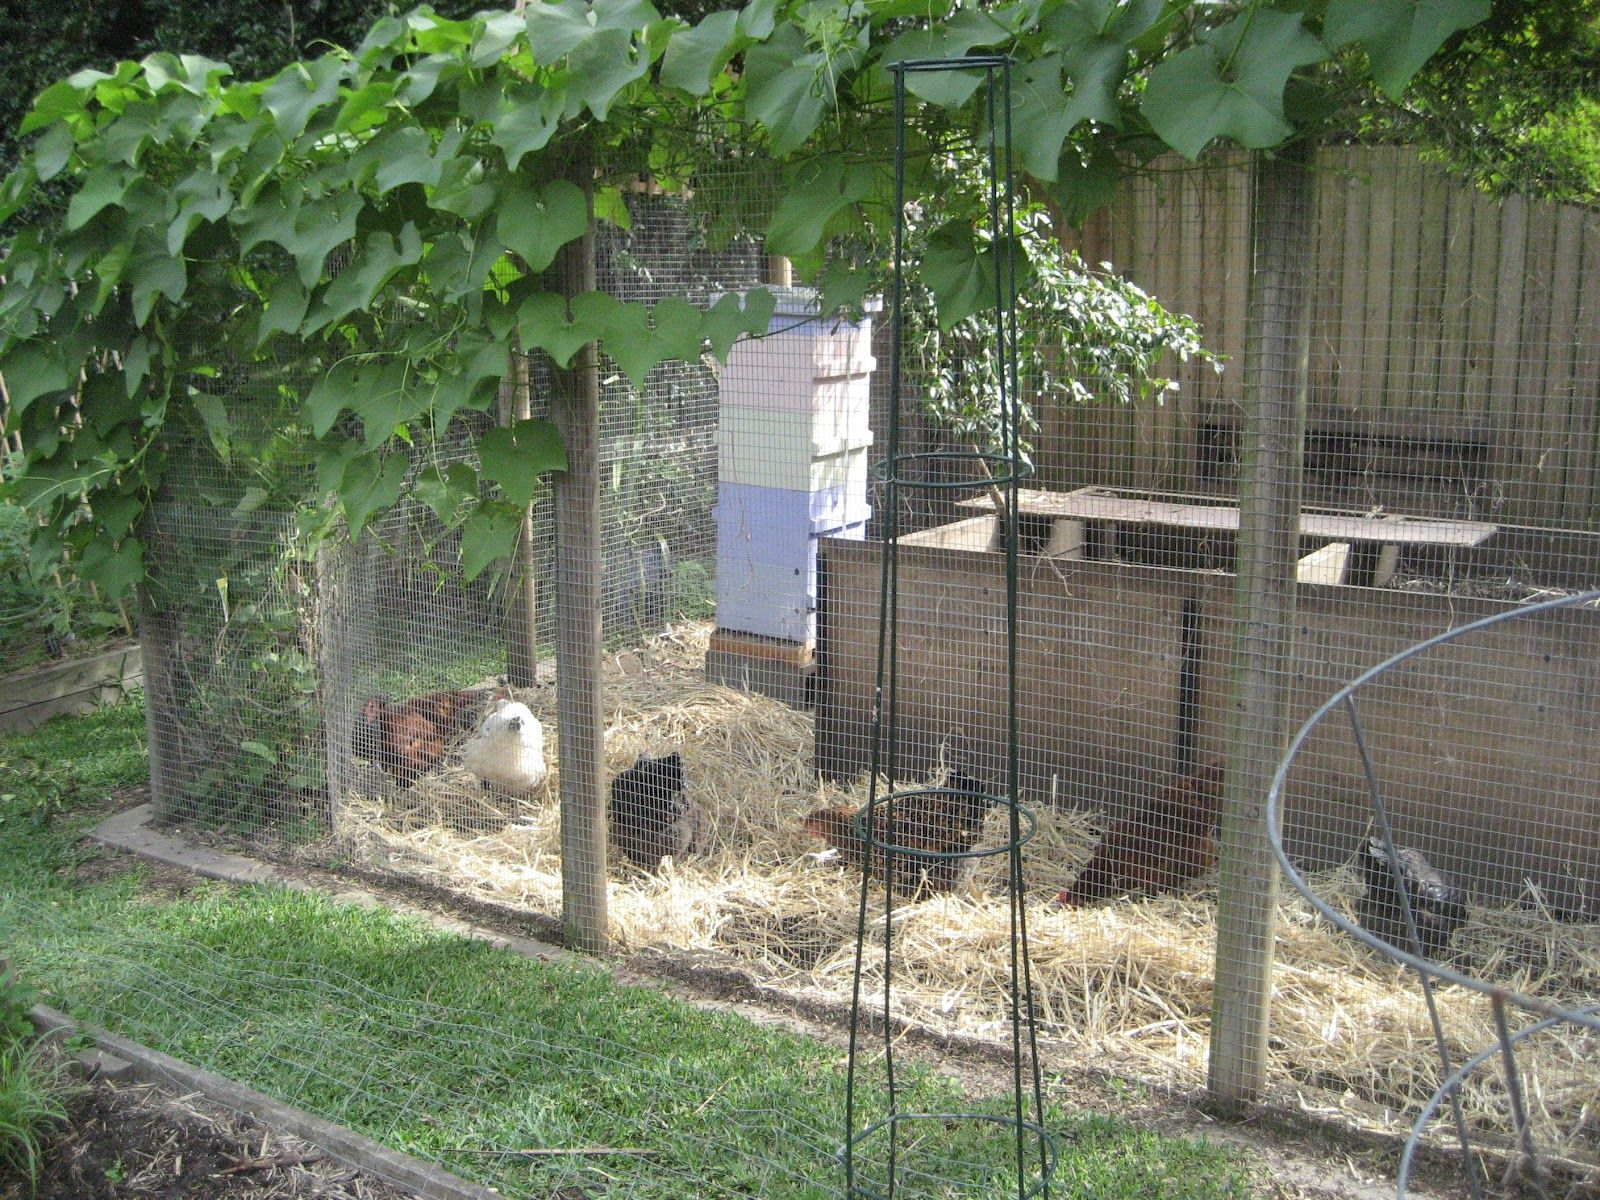 chook shed google search chook sheds pinterest cubby houses